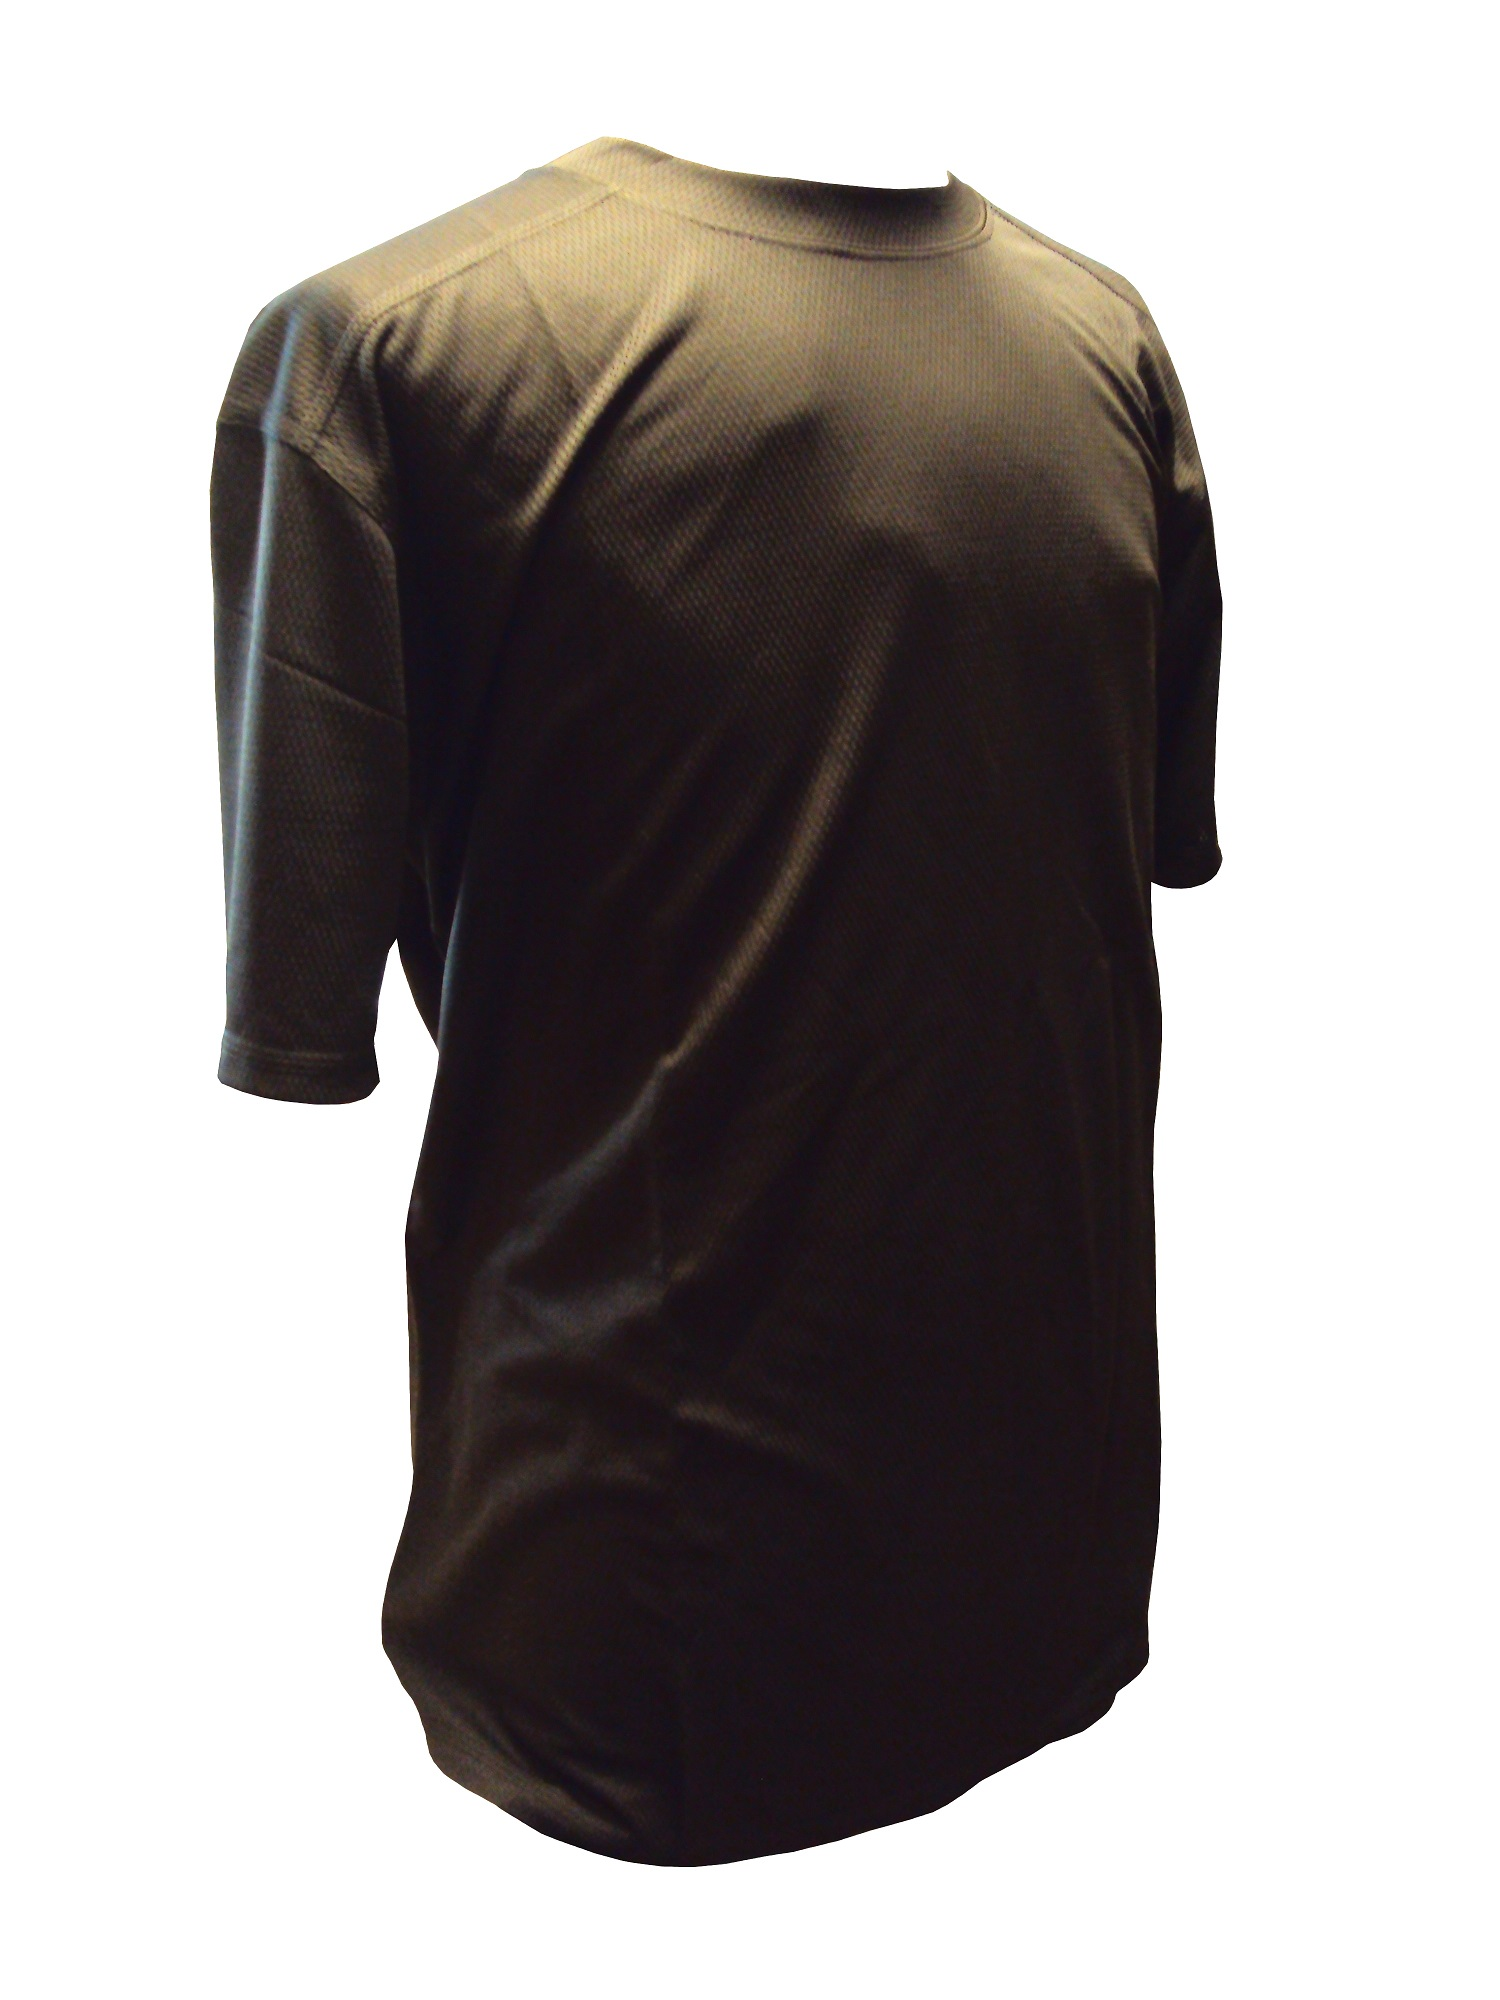 Lot 10 - PACK OF 10 - SELF WICKING BROWN SHIRTS - GRADE 1